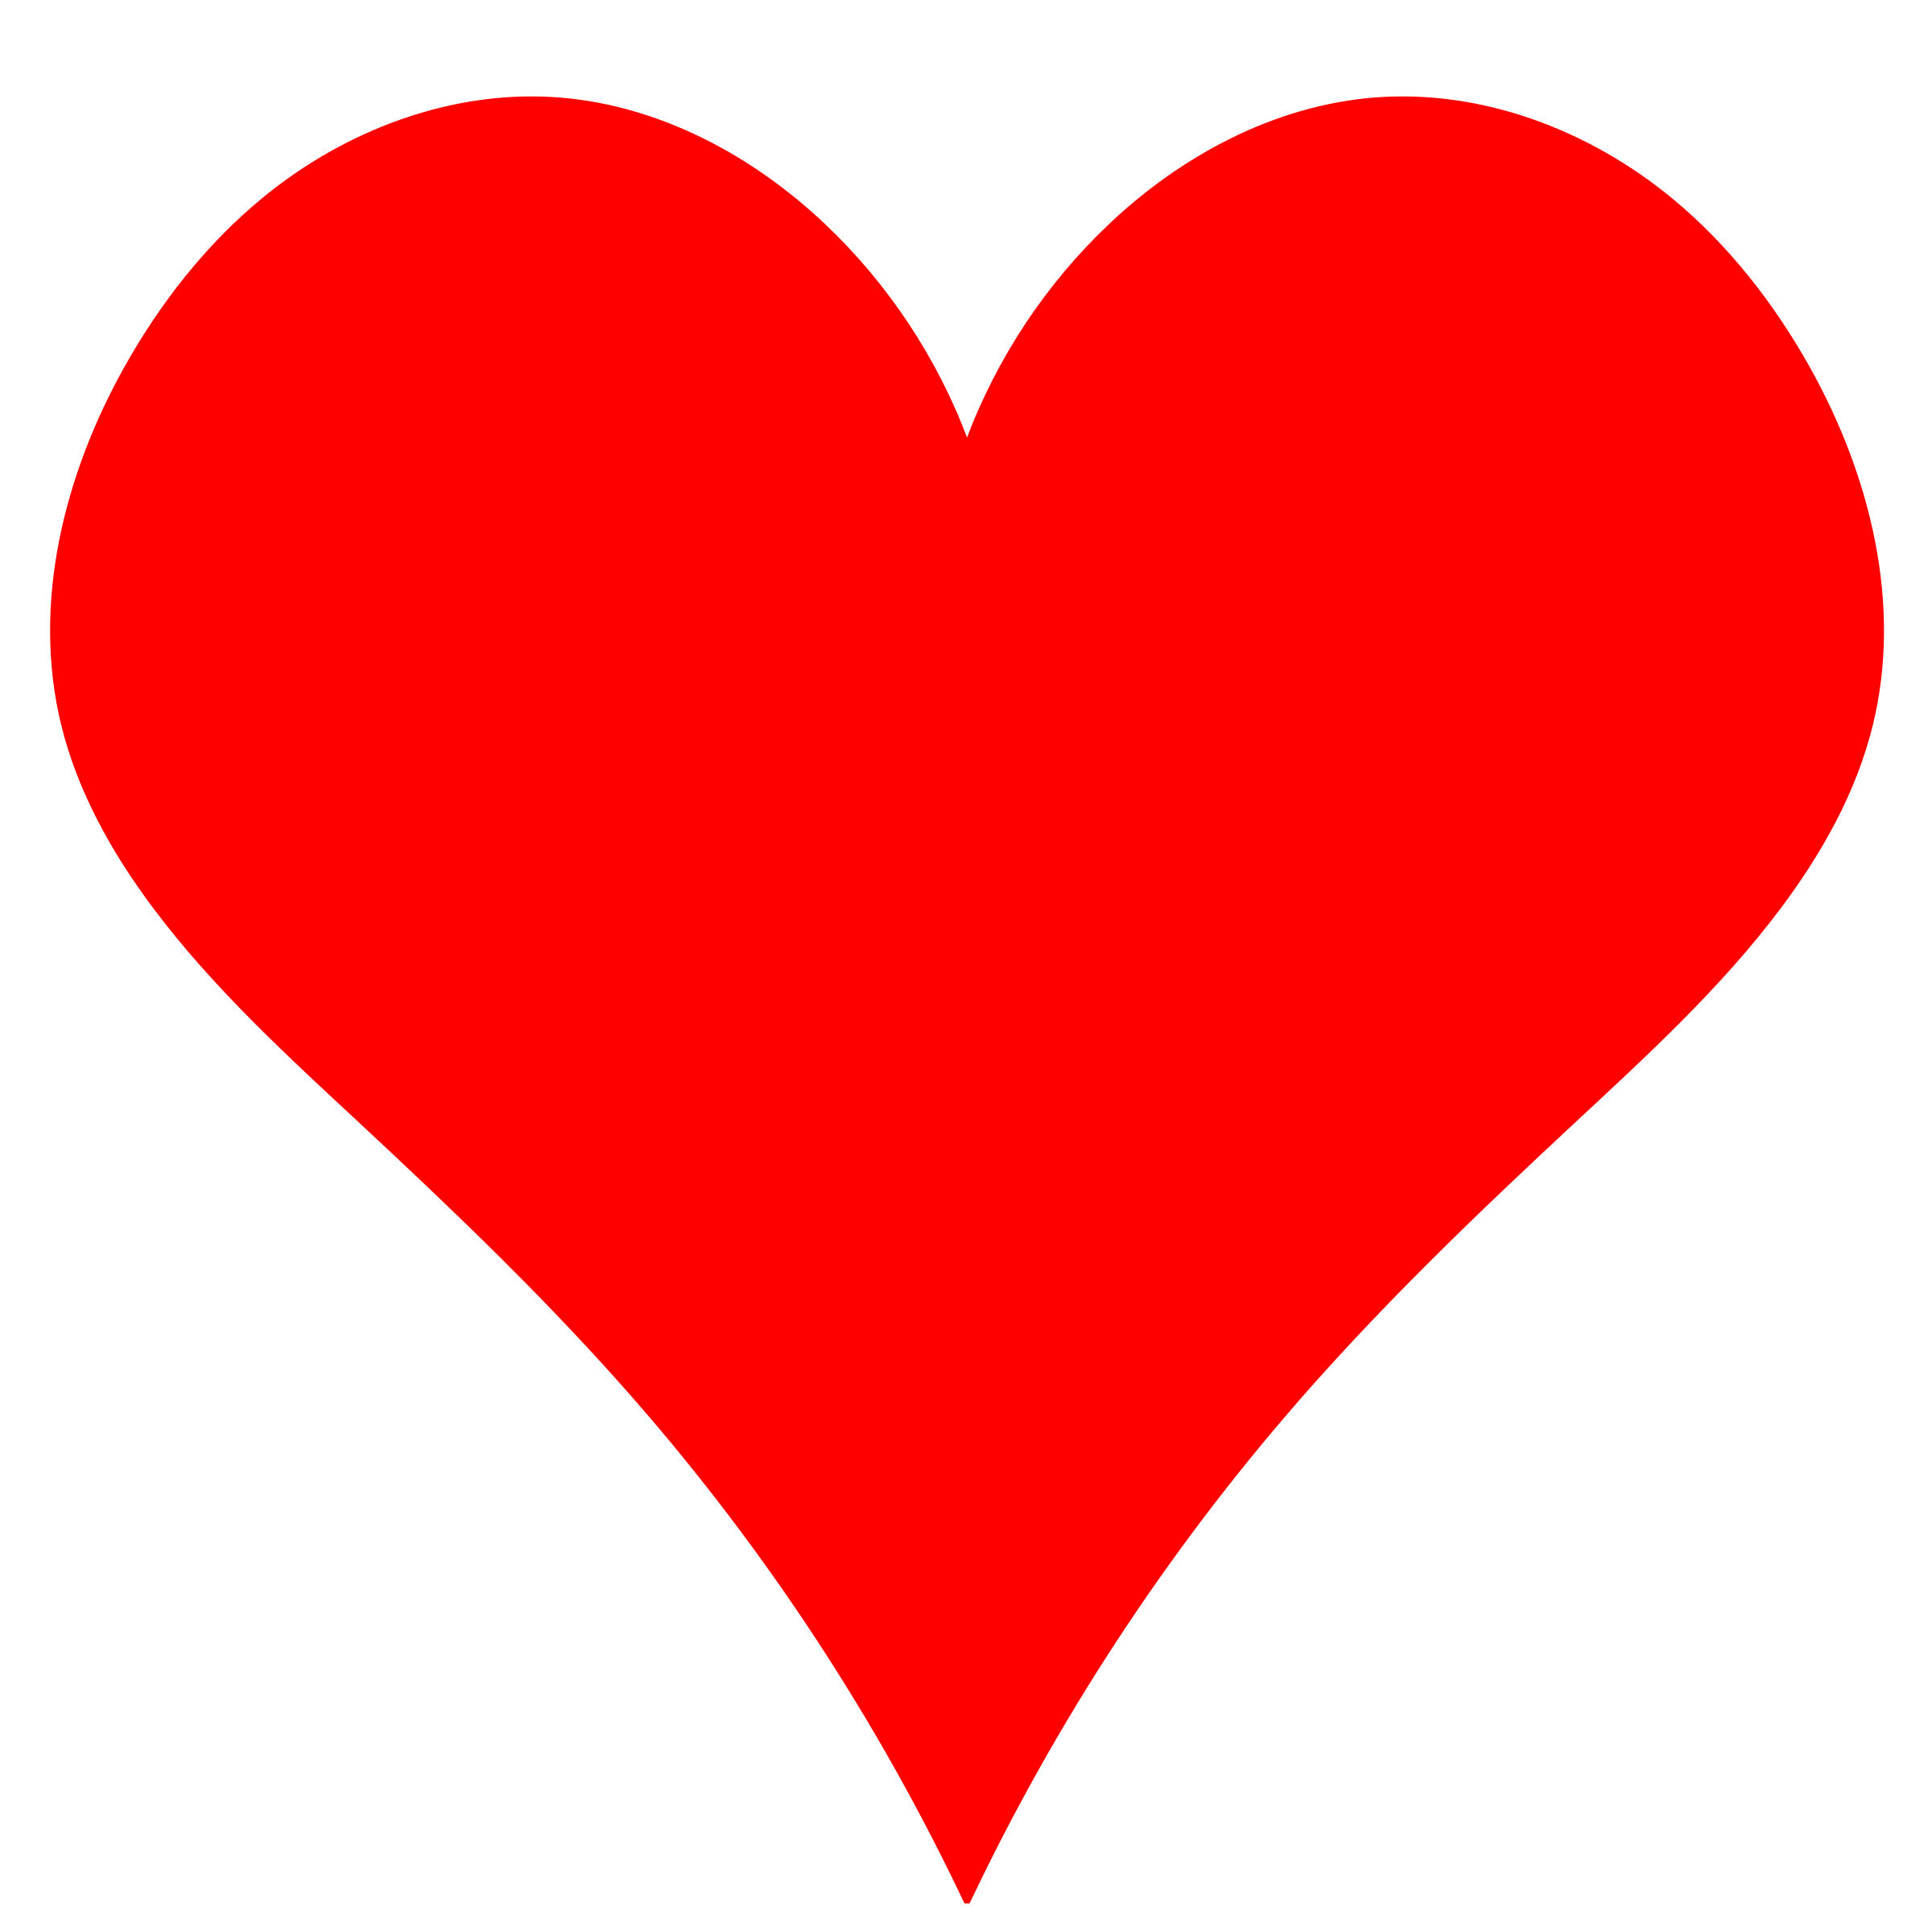 Free Heart Shape Cliparts, Download Free Clip Art, Free Clip.